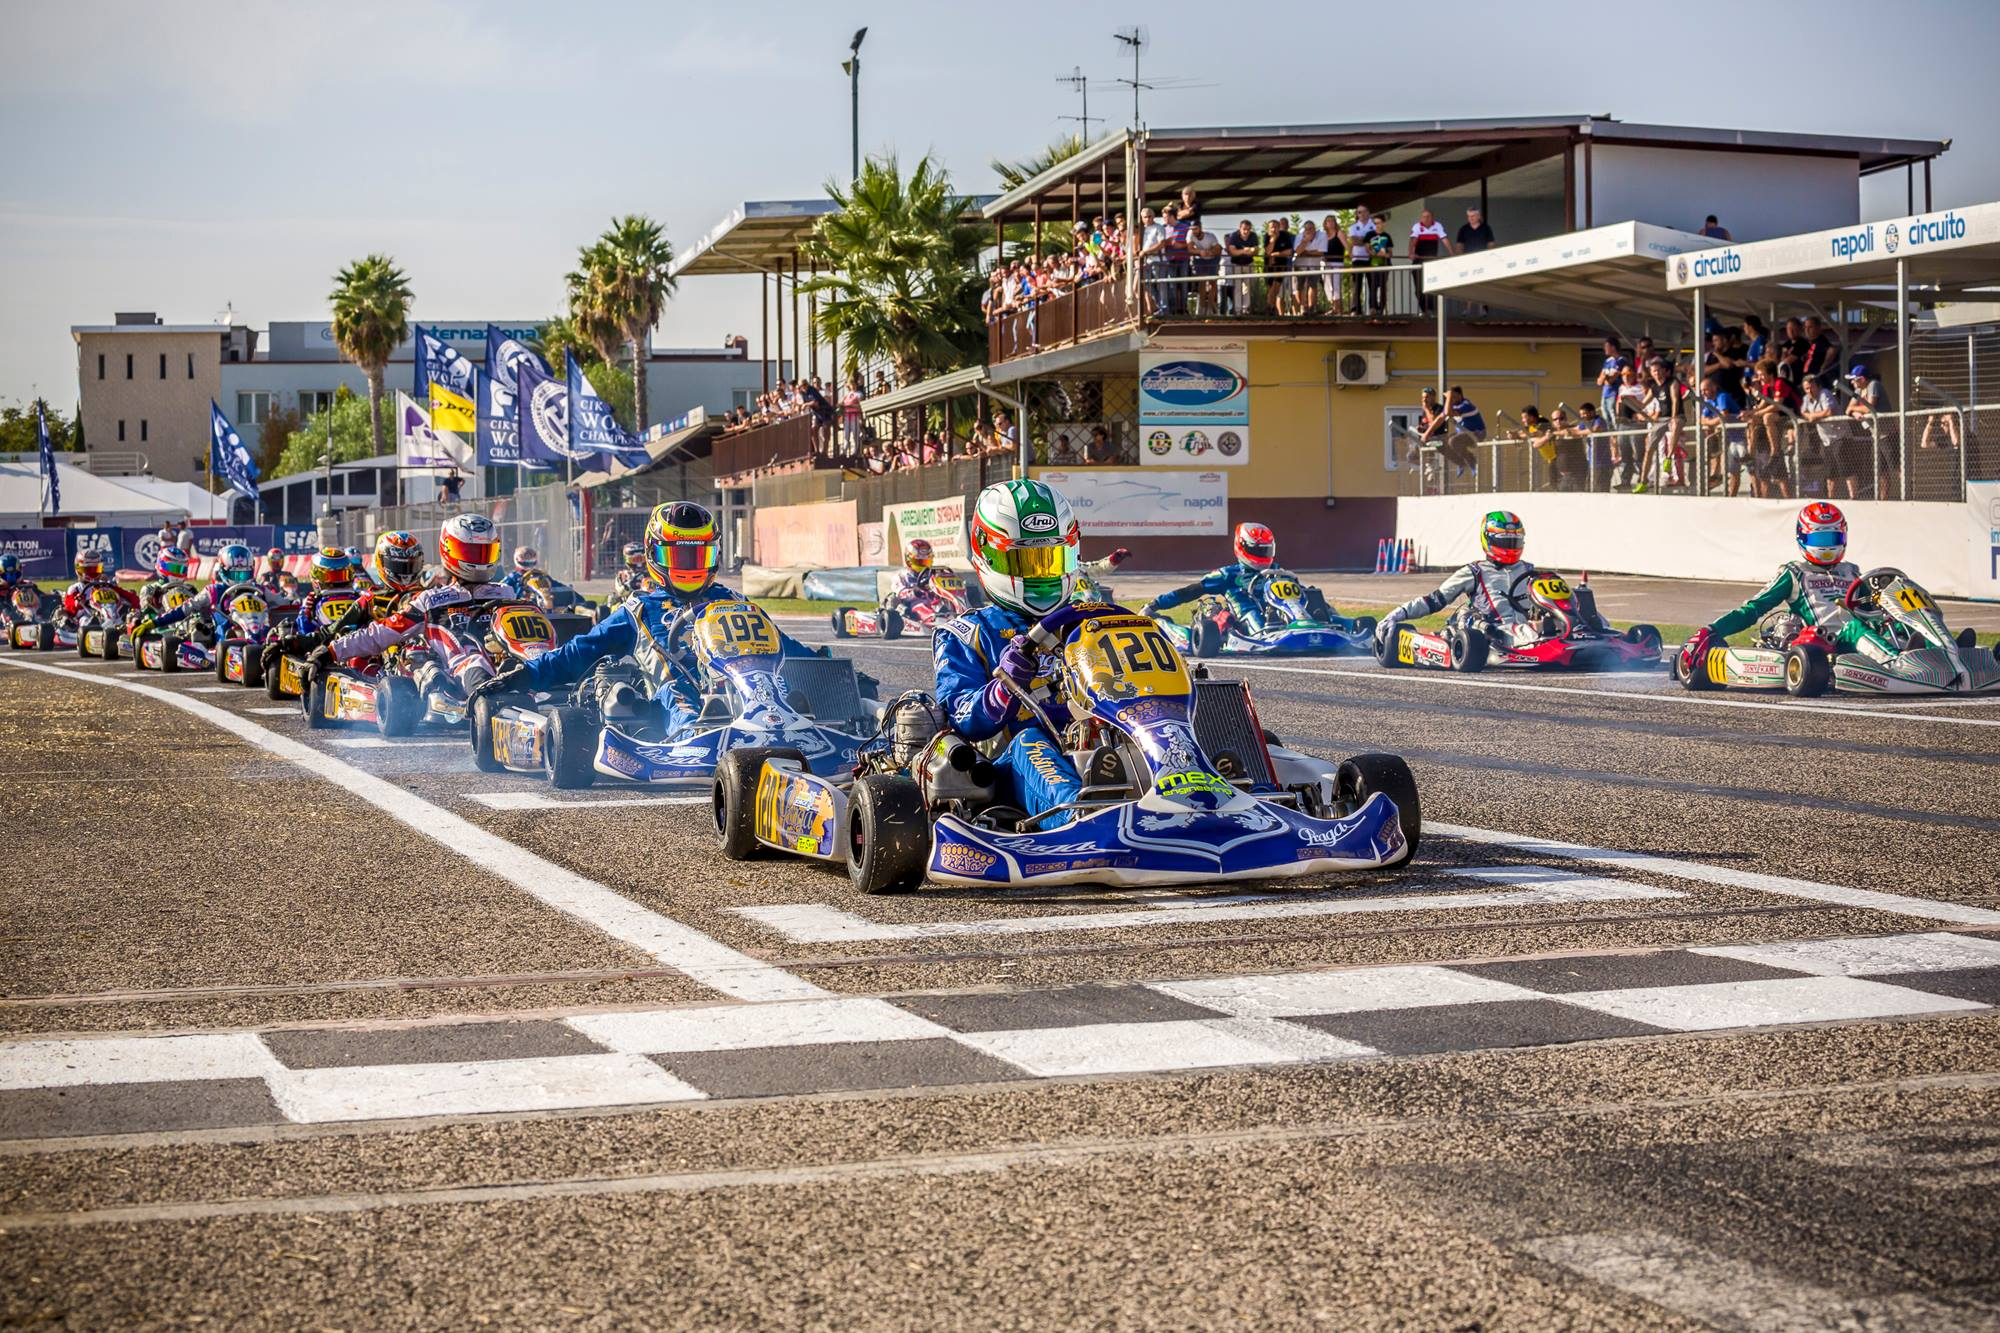 3 drives in the top 10 of CIK FIA World Championship